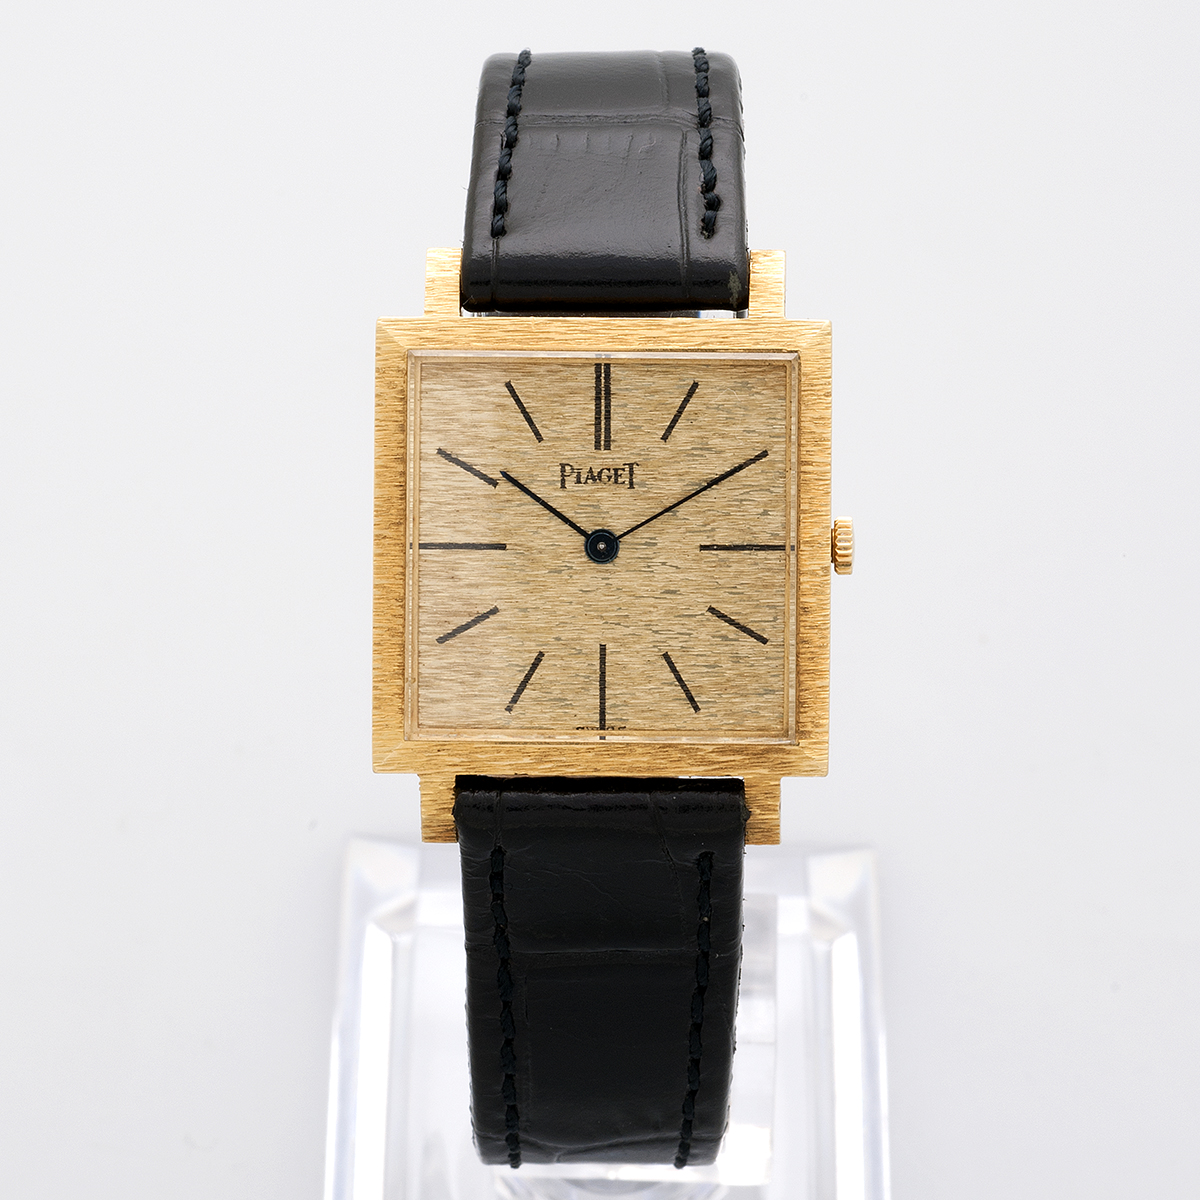 Vintage Piaget Watches